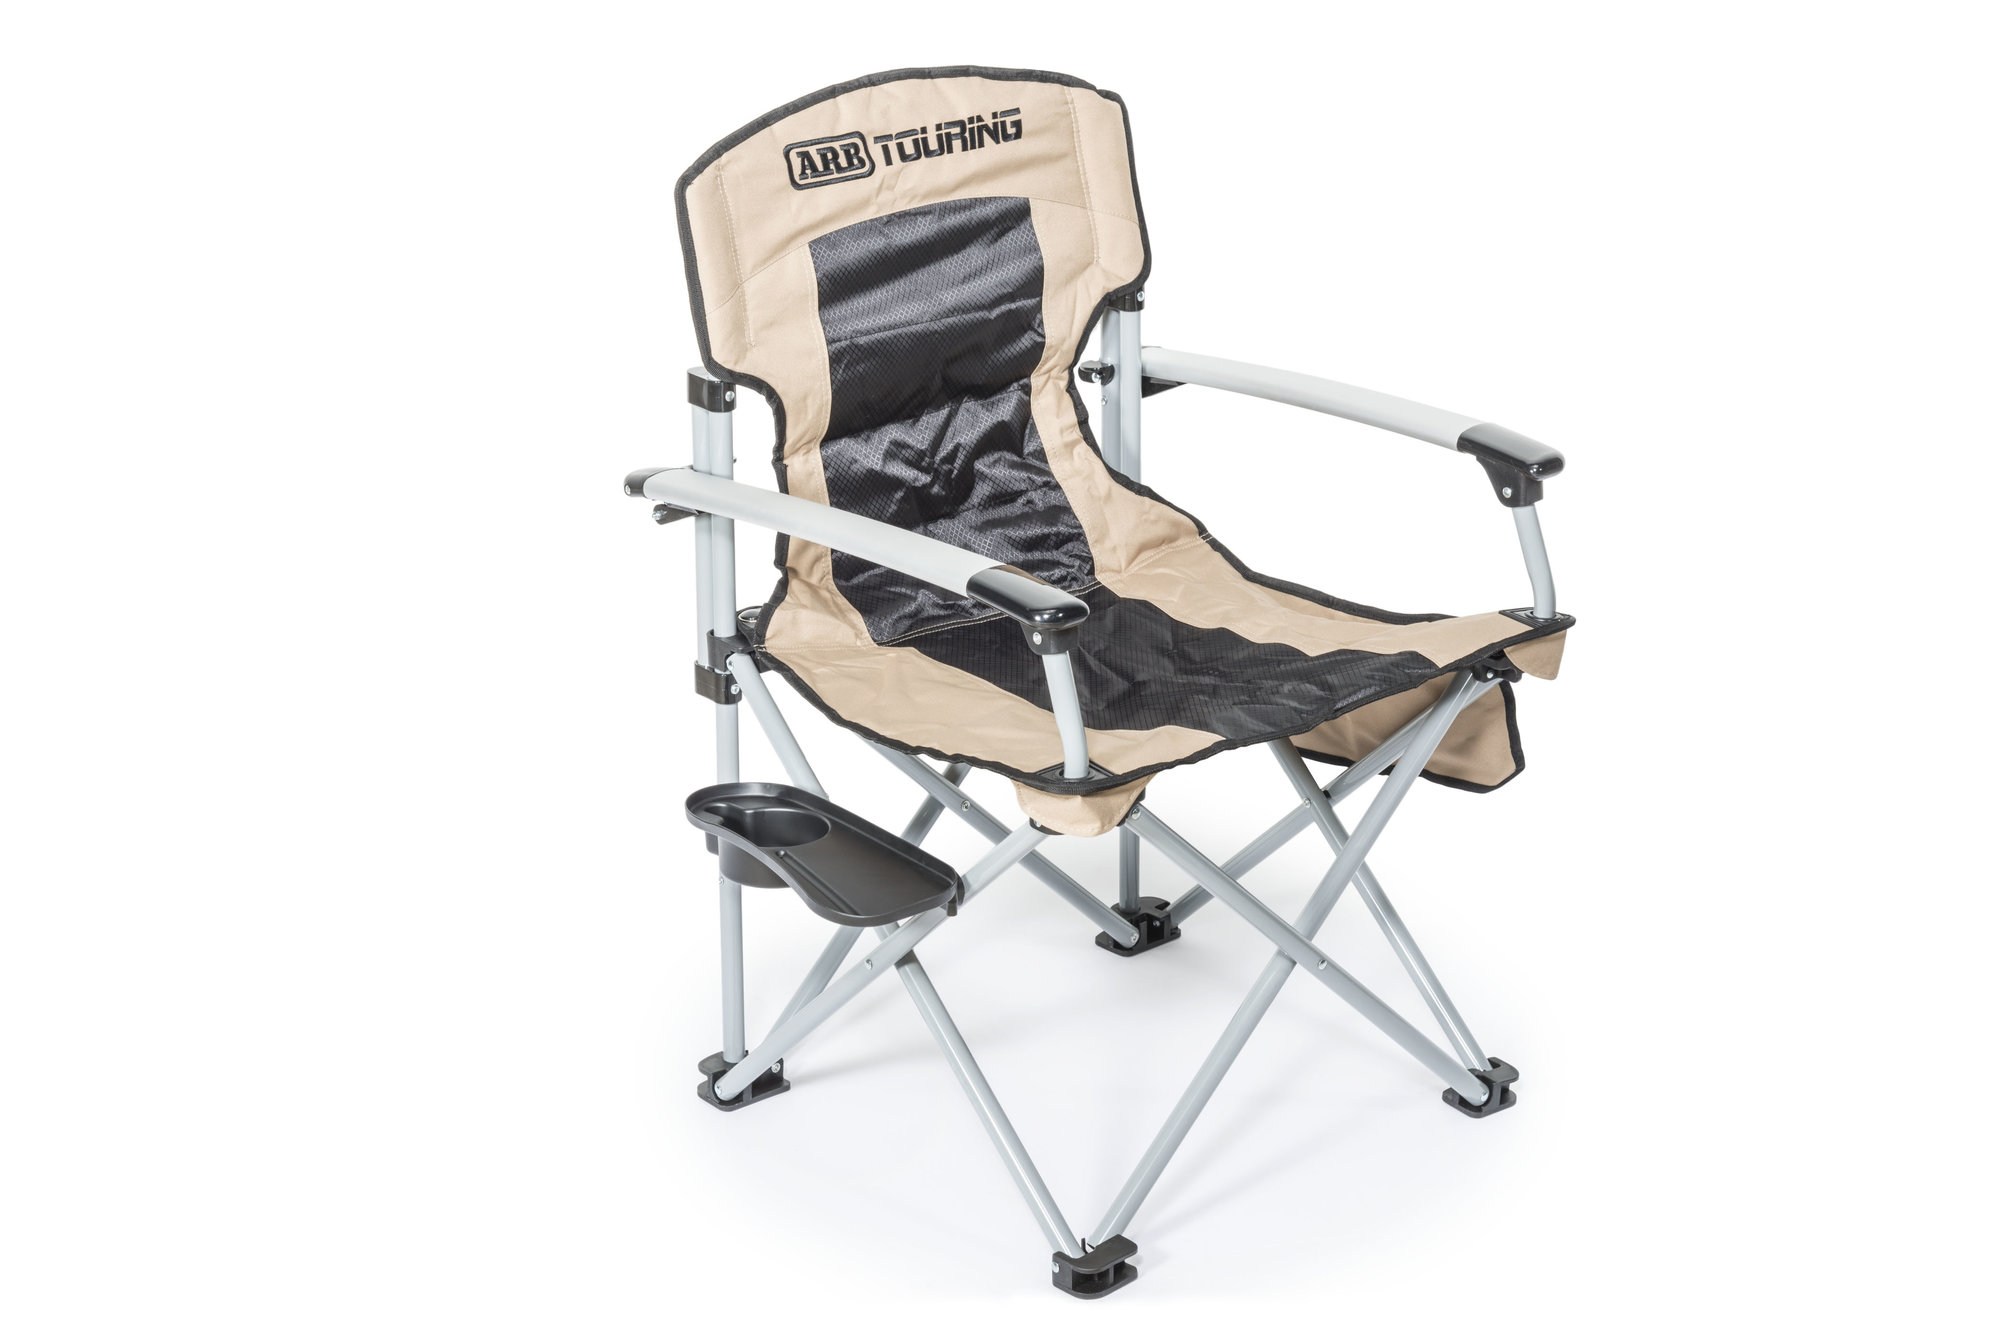 Arb 10500101a Touring Camping Chair With Table